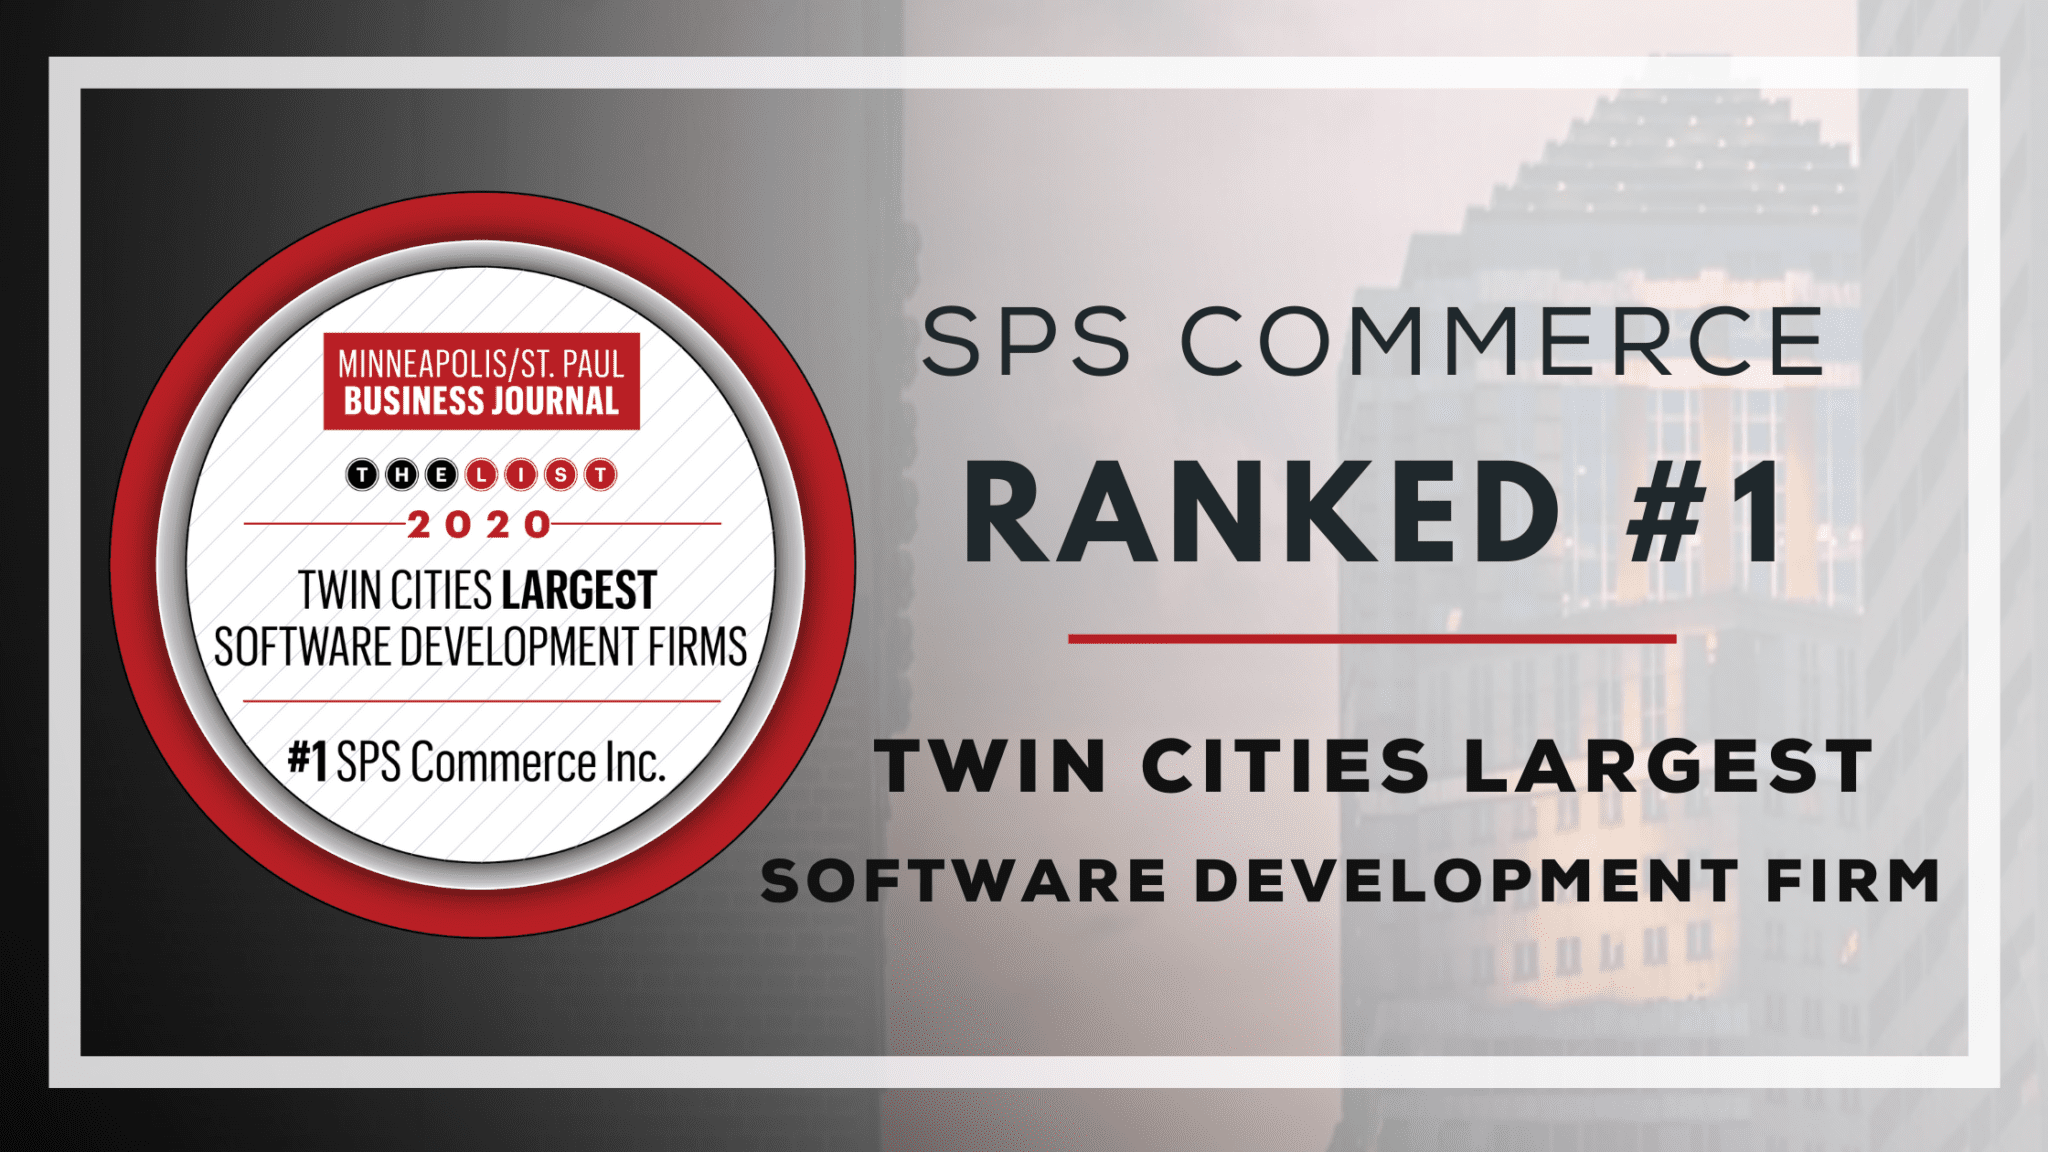 SPS Ranked #1 Twin Cities Tech Firm, Employs 20% of Local Tech Workforce at Software Firms